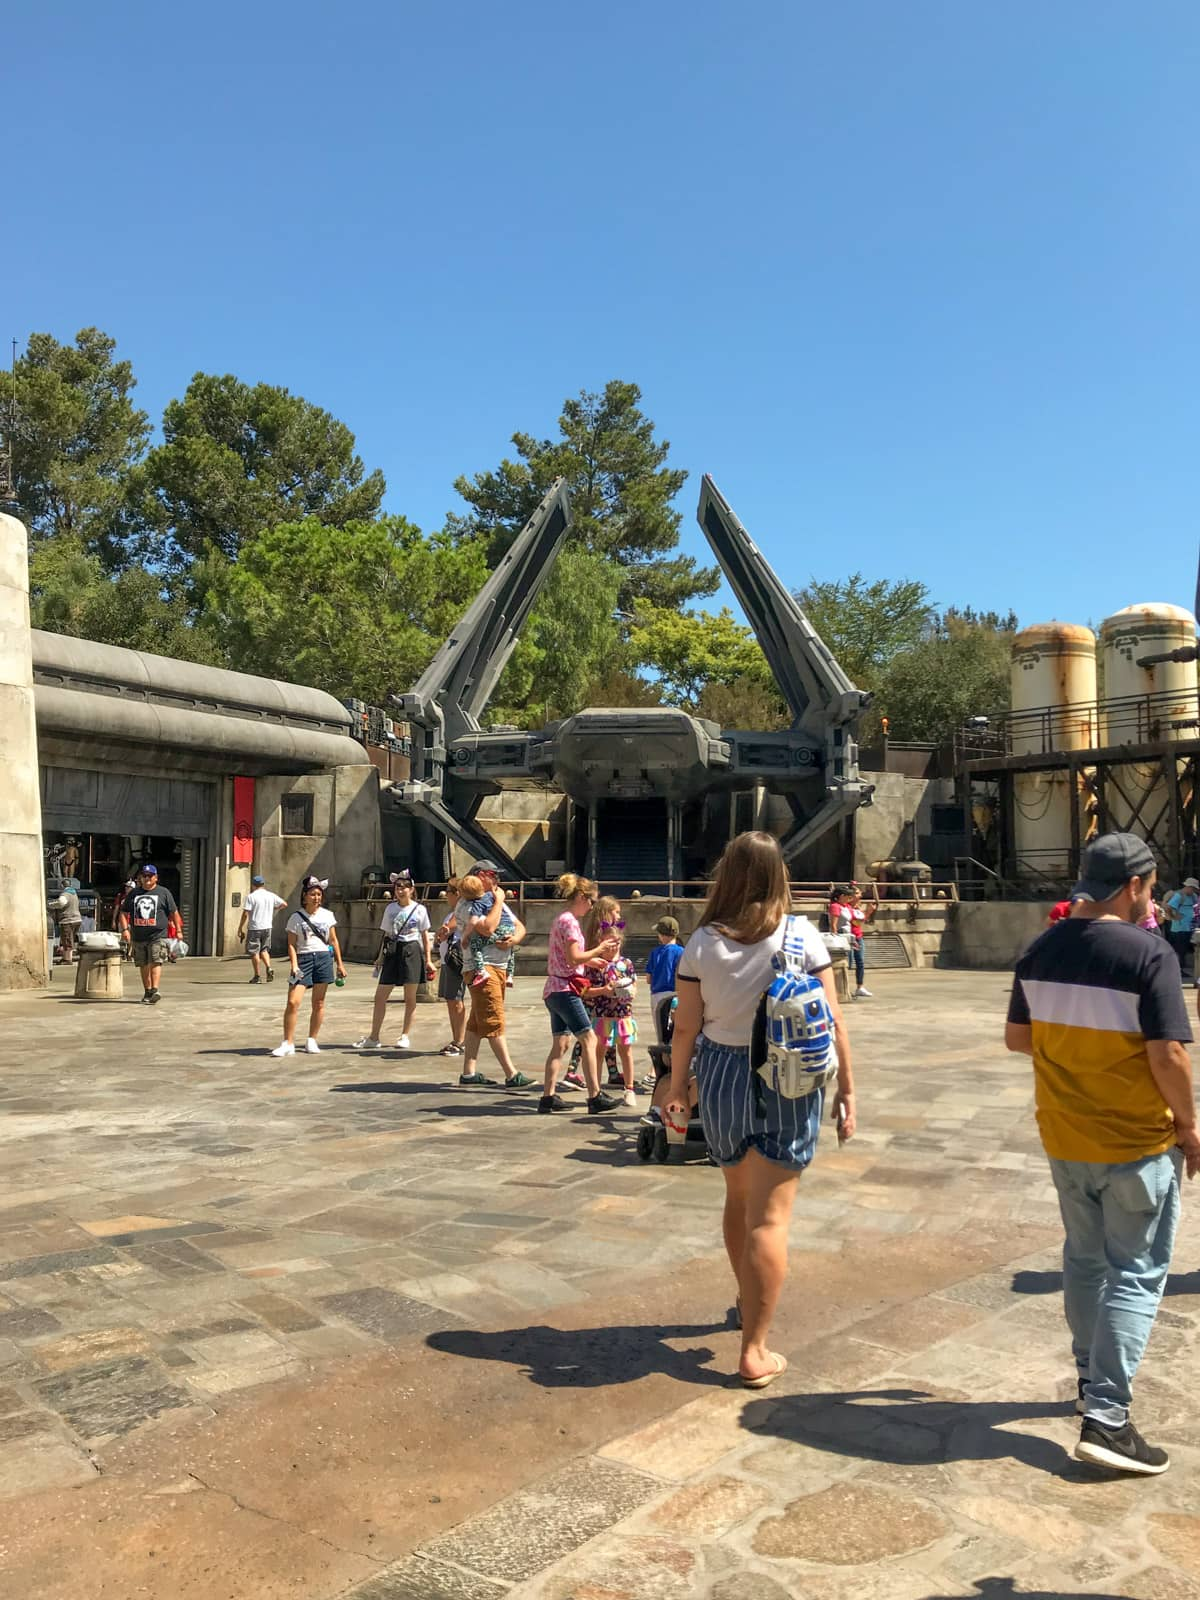 Some people walking around in an open area of a theme park, that is themed to look like a futuristic and earthy outer-space area.